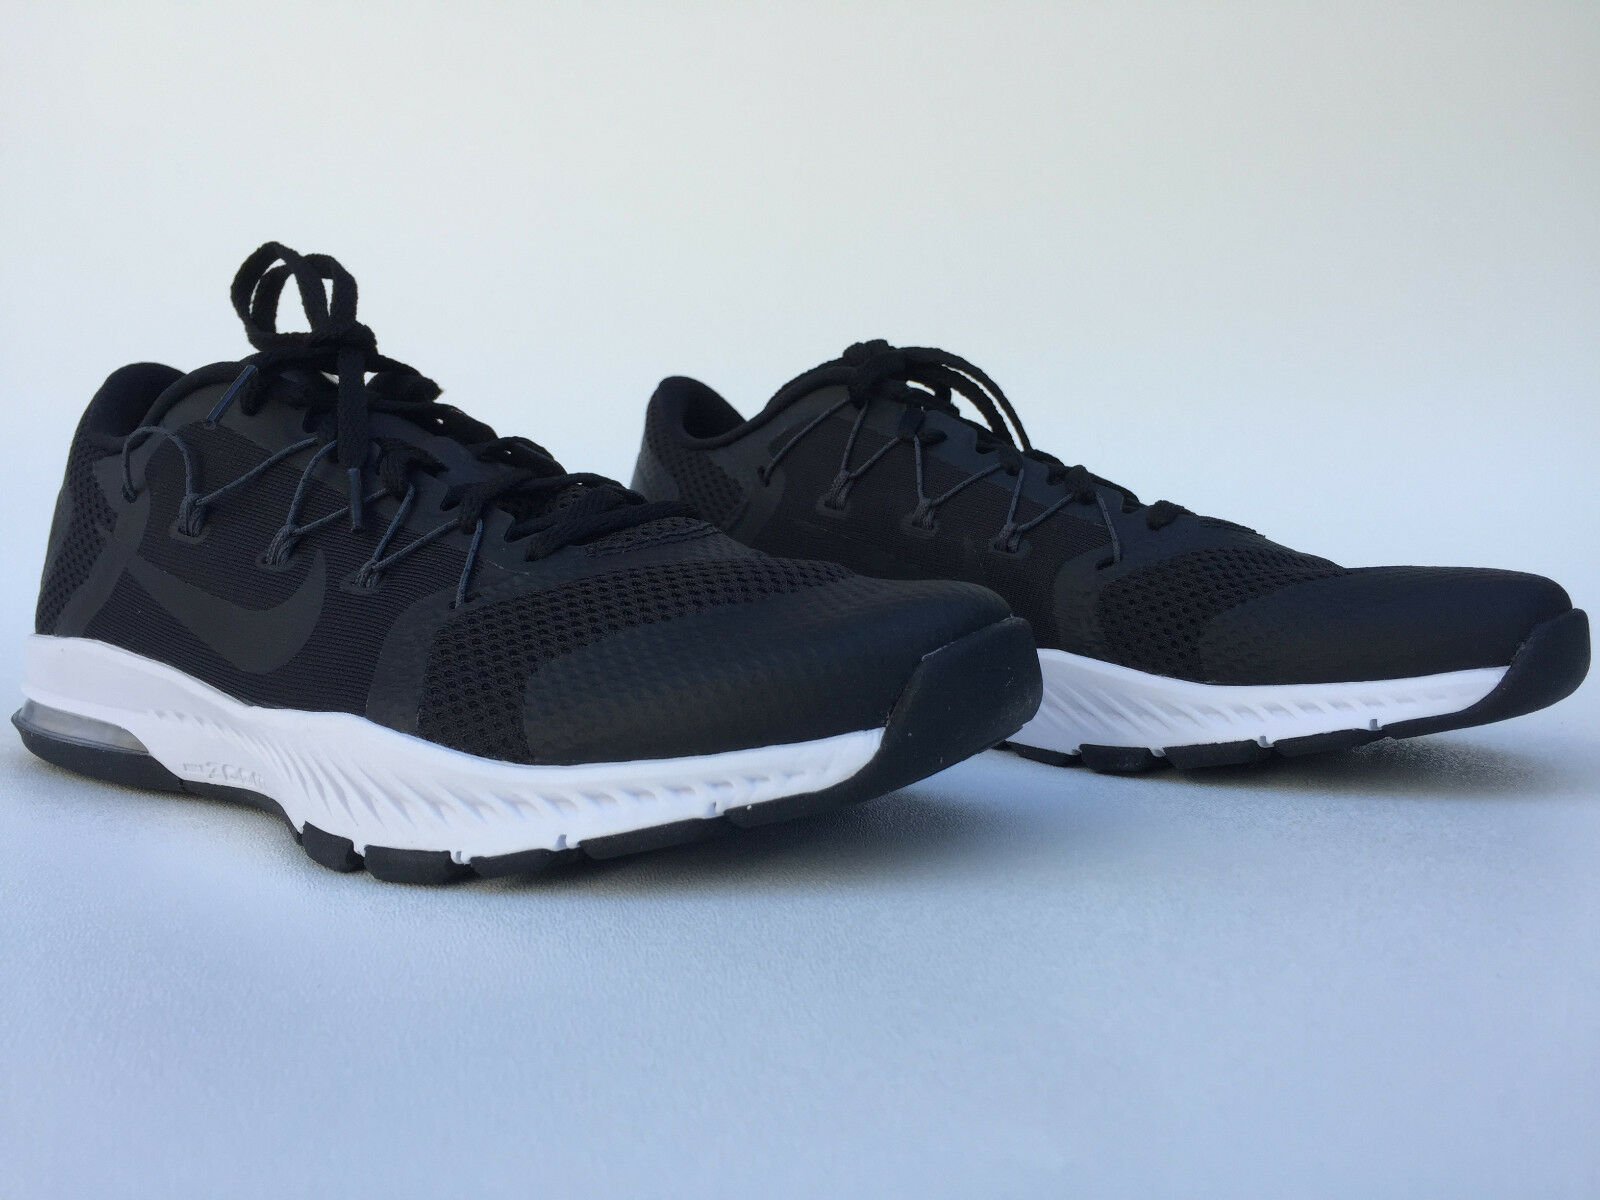 Men's NIKE Zoom Train Complete TRAINING Shoes Comfortable